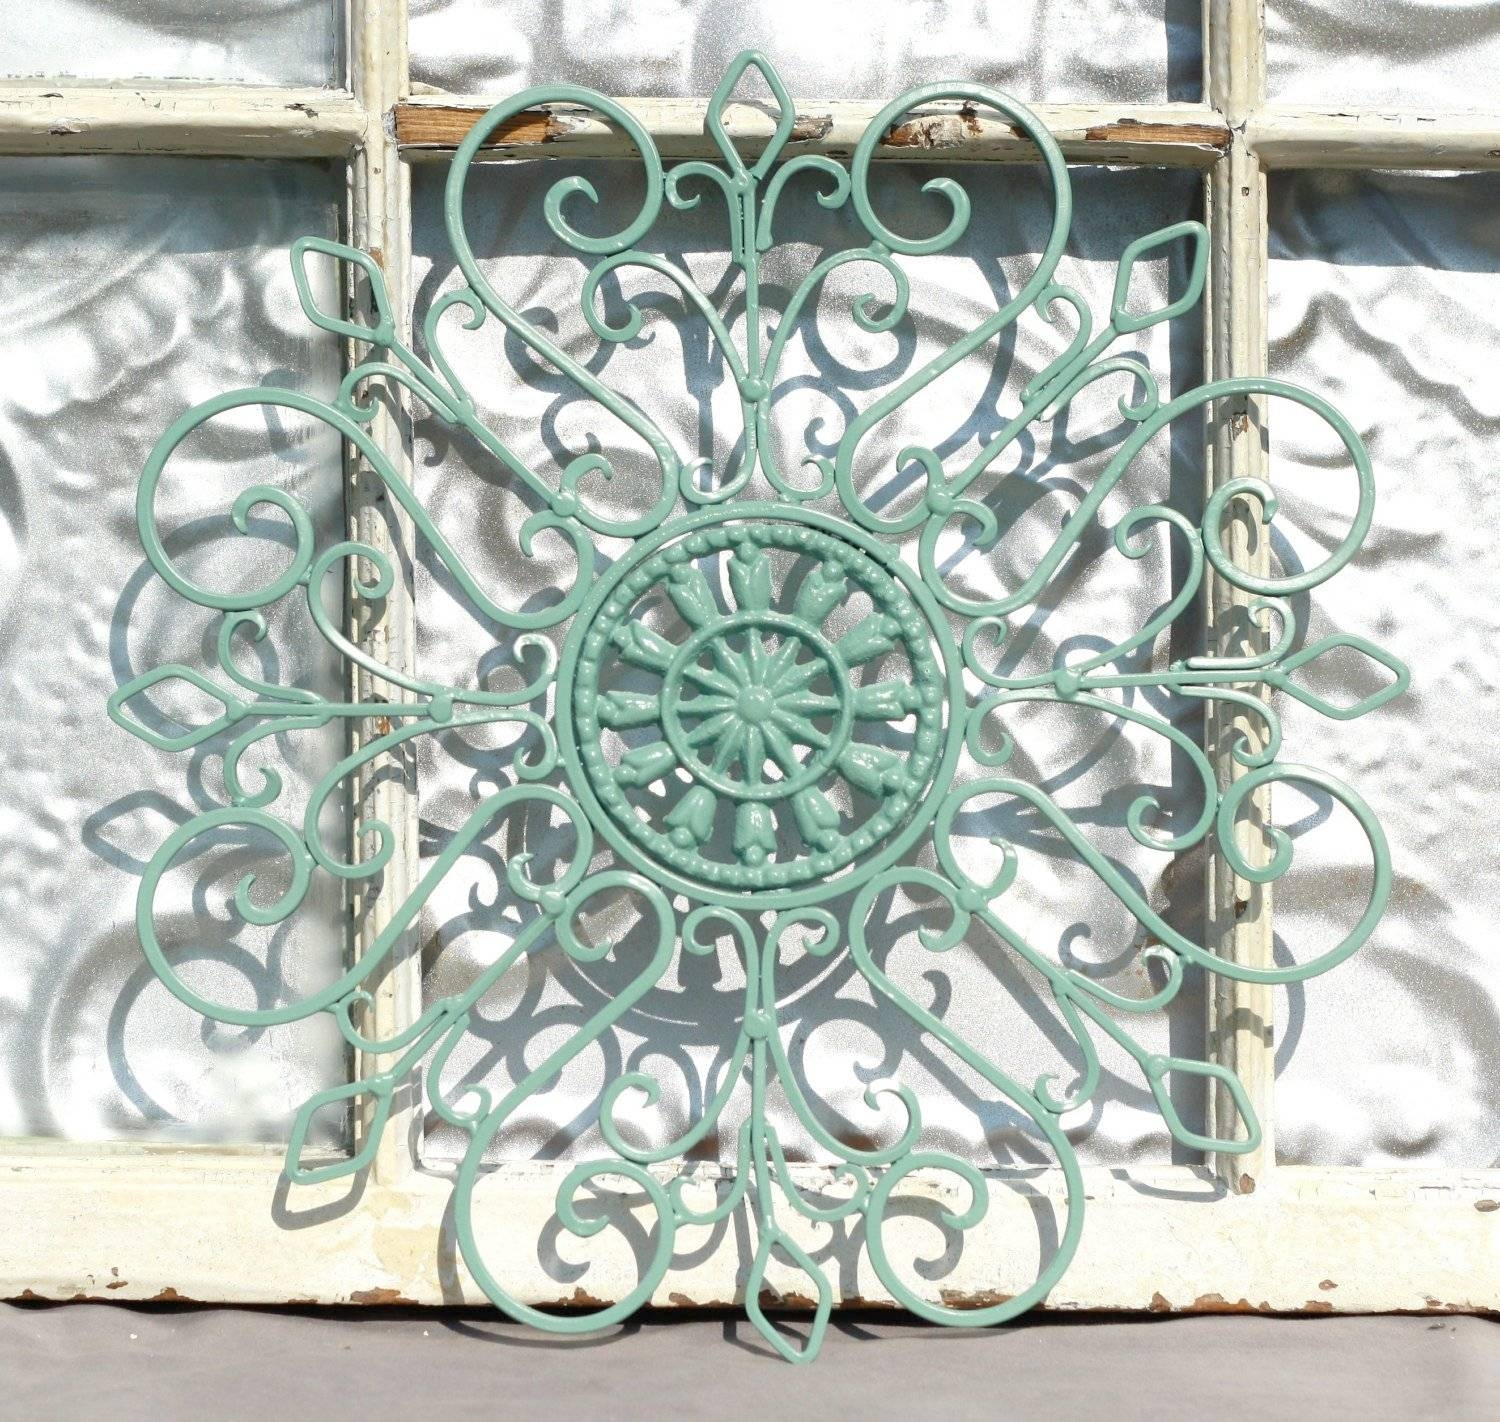 Wrought Iron Garden Wall Art Modern Style Home Design Idea Shabby Within Most Up To Date Garden Wall Art (View 13 of 30)